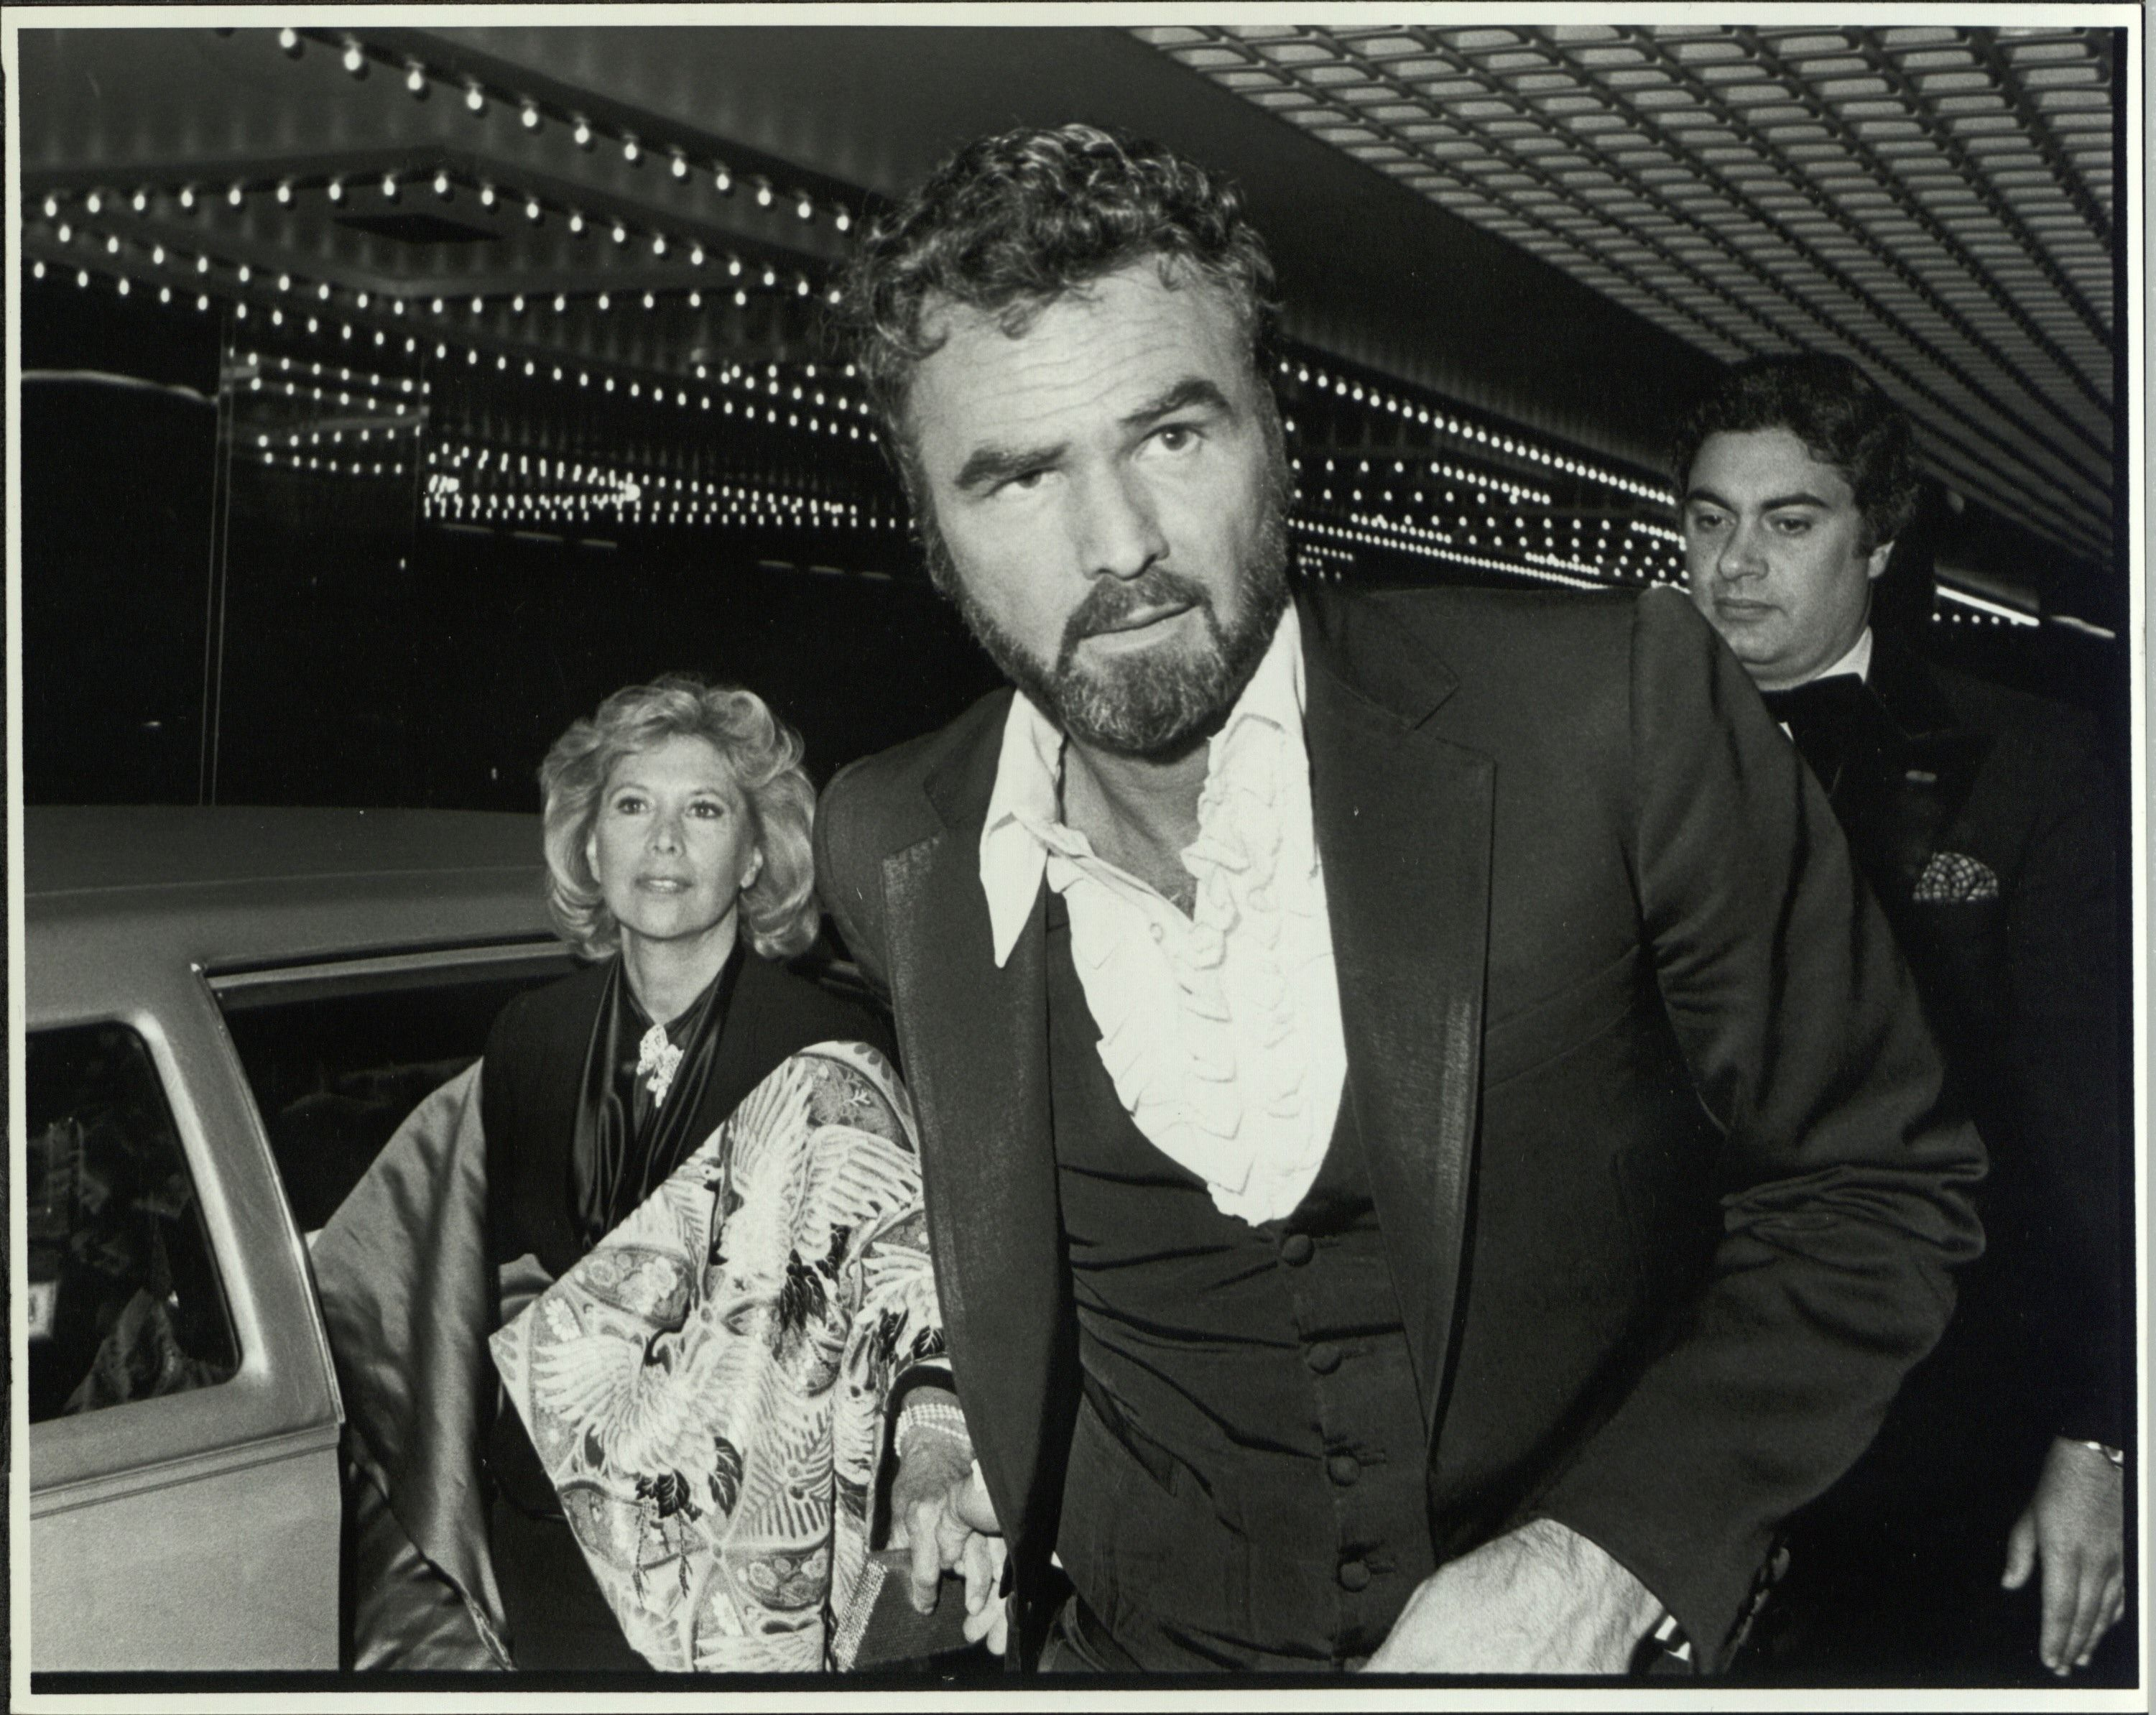 20 Photos That Show the Eternal Cool of Burt Reynolds